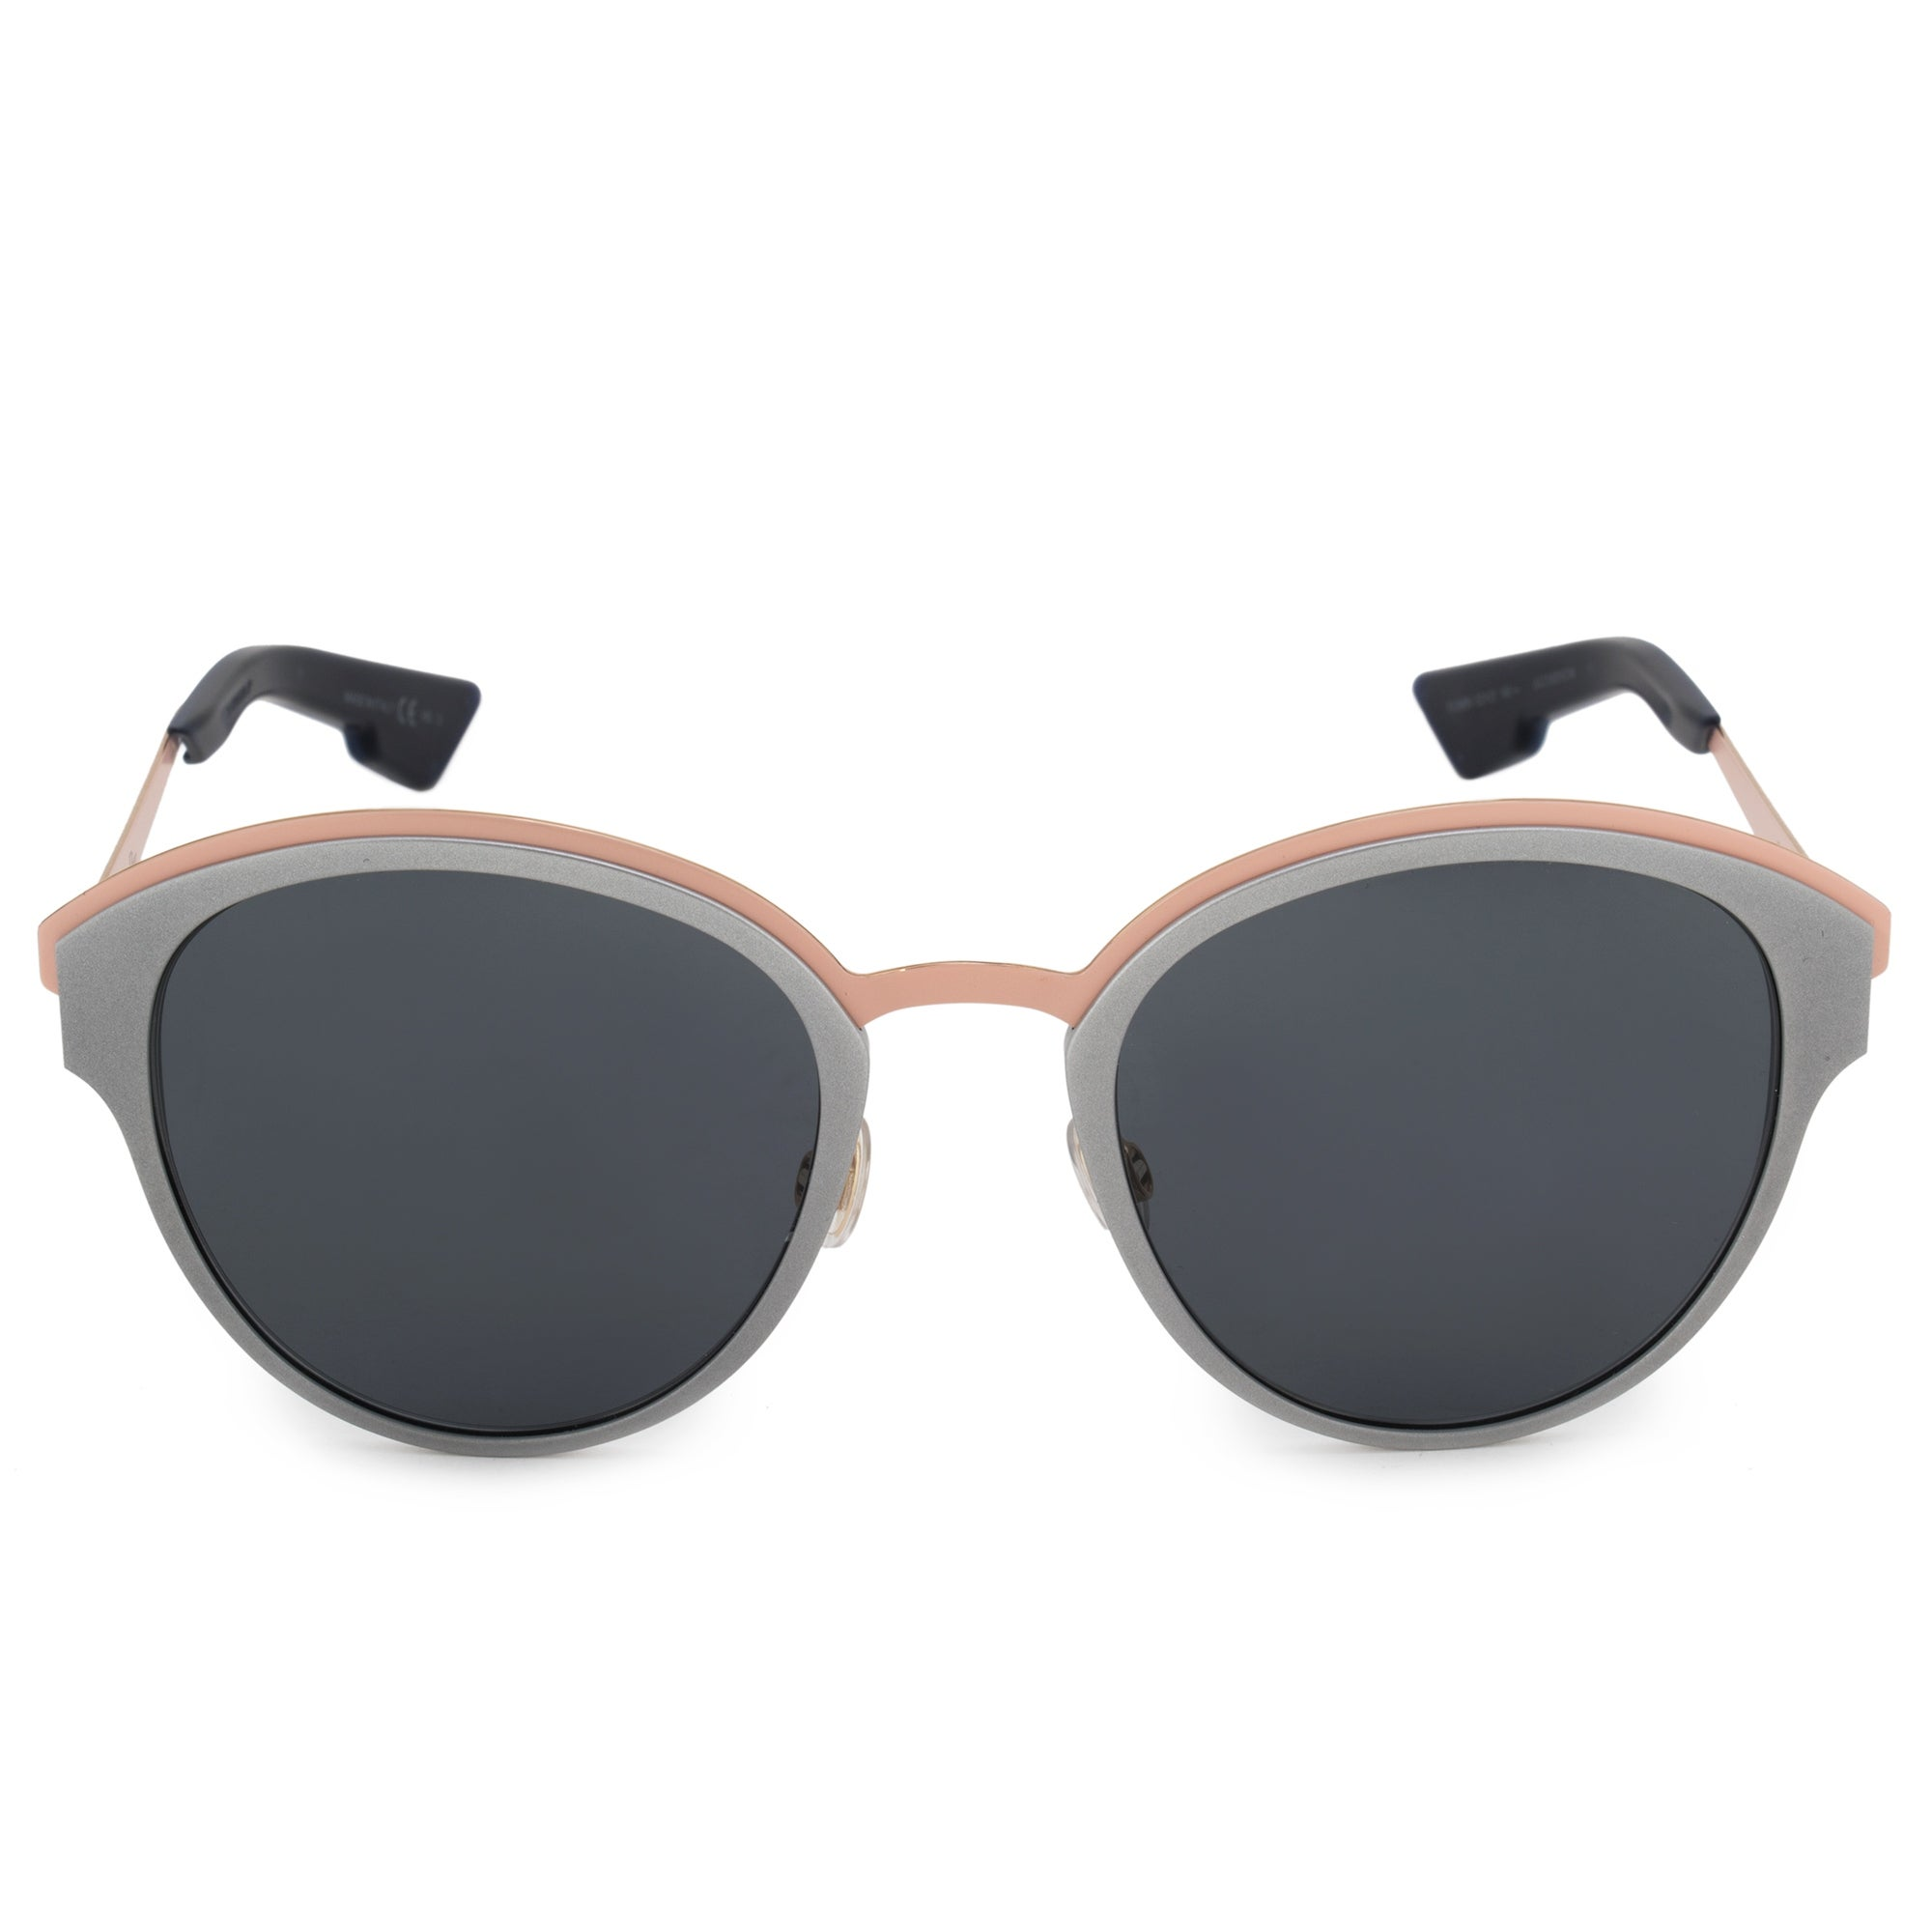 094f7a84ea75 Shop Christian Dior Sun Oval Sunglasses RCMBN 52 - Free Shipping Today -  Overstock - 25895126